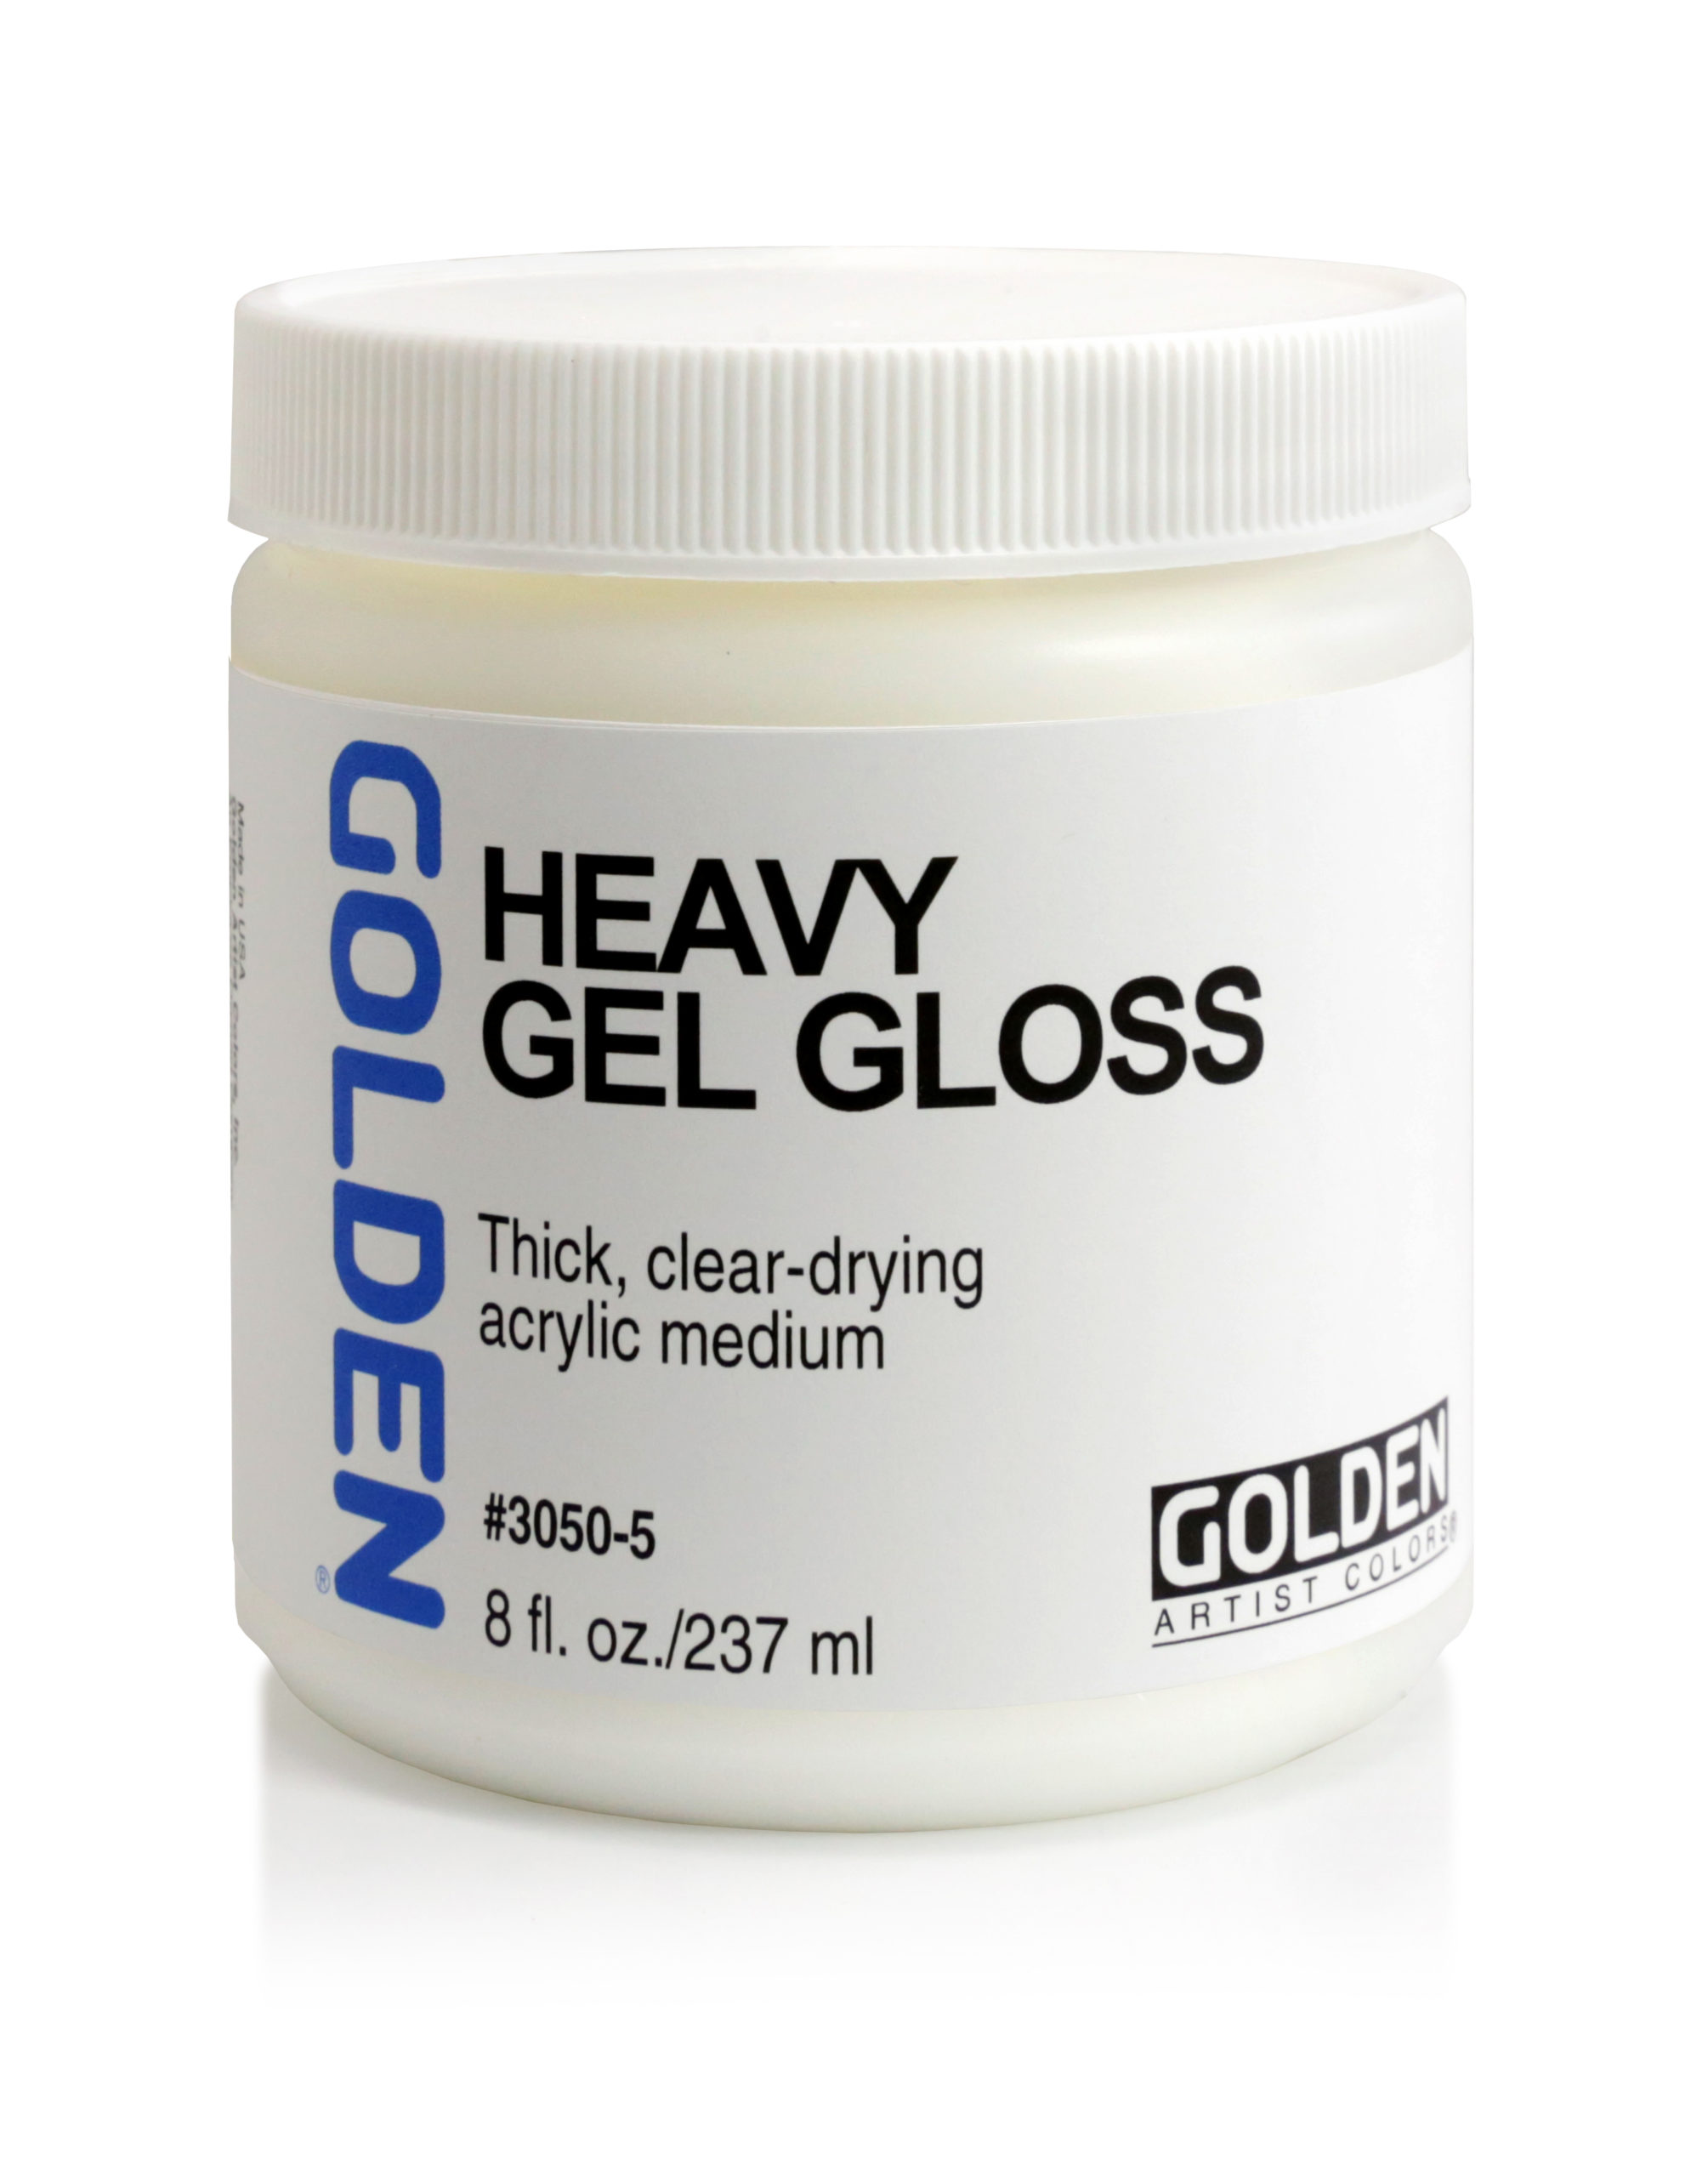 Heavy Gel Gloss